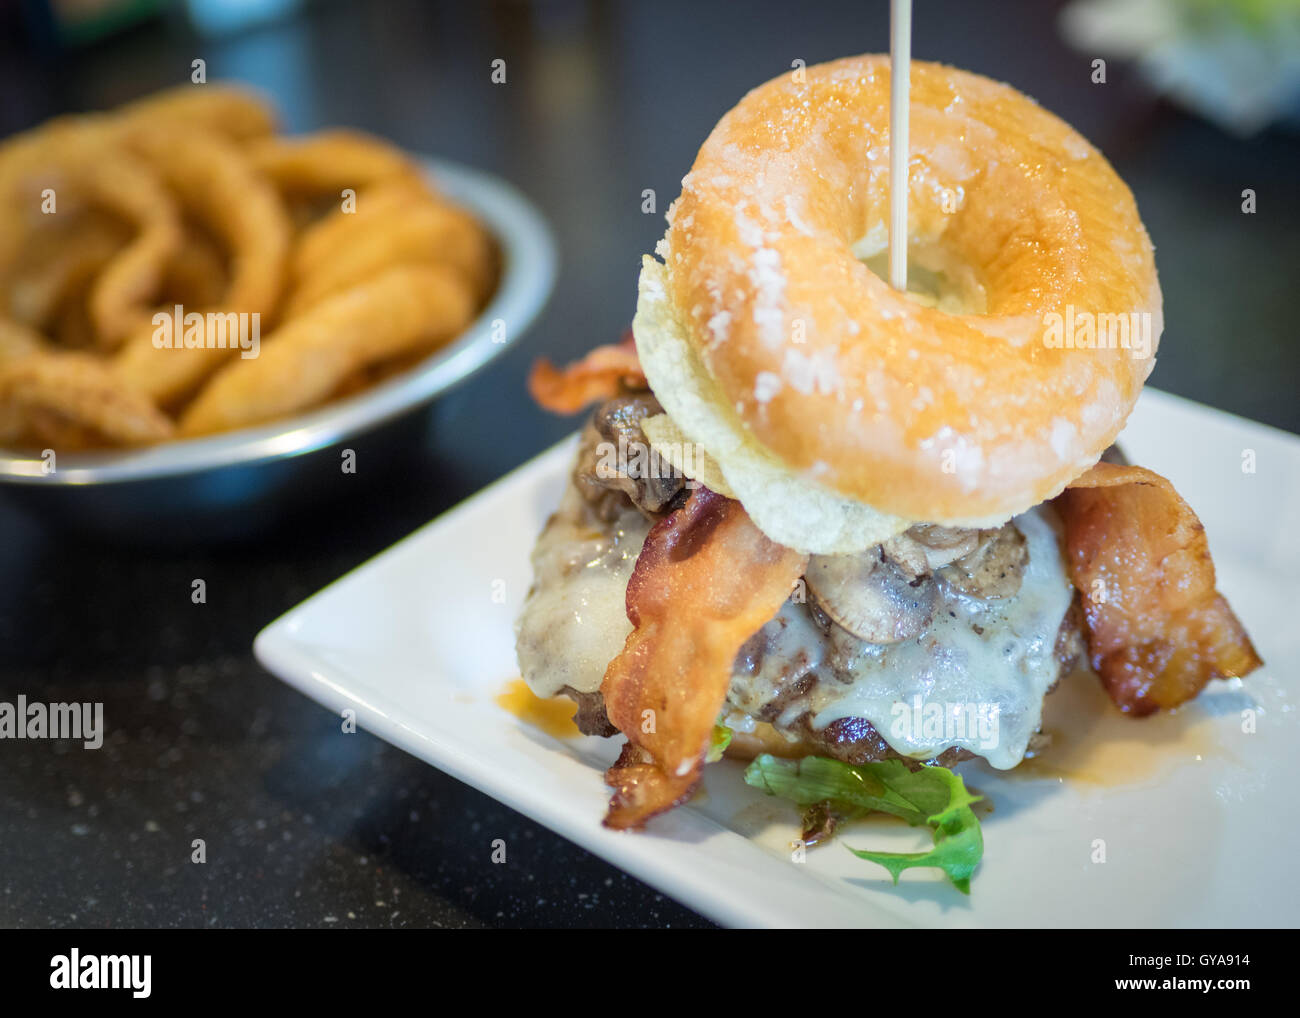 A bacon donut burger (Luther Burger) from Soda Jerks restaurant in Edmonton, Alberta, Canada. - Stock Image